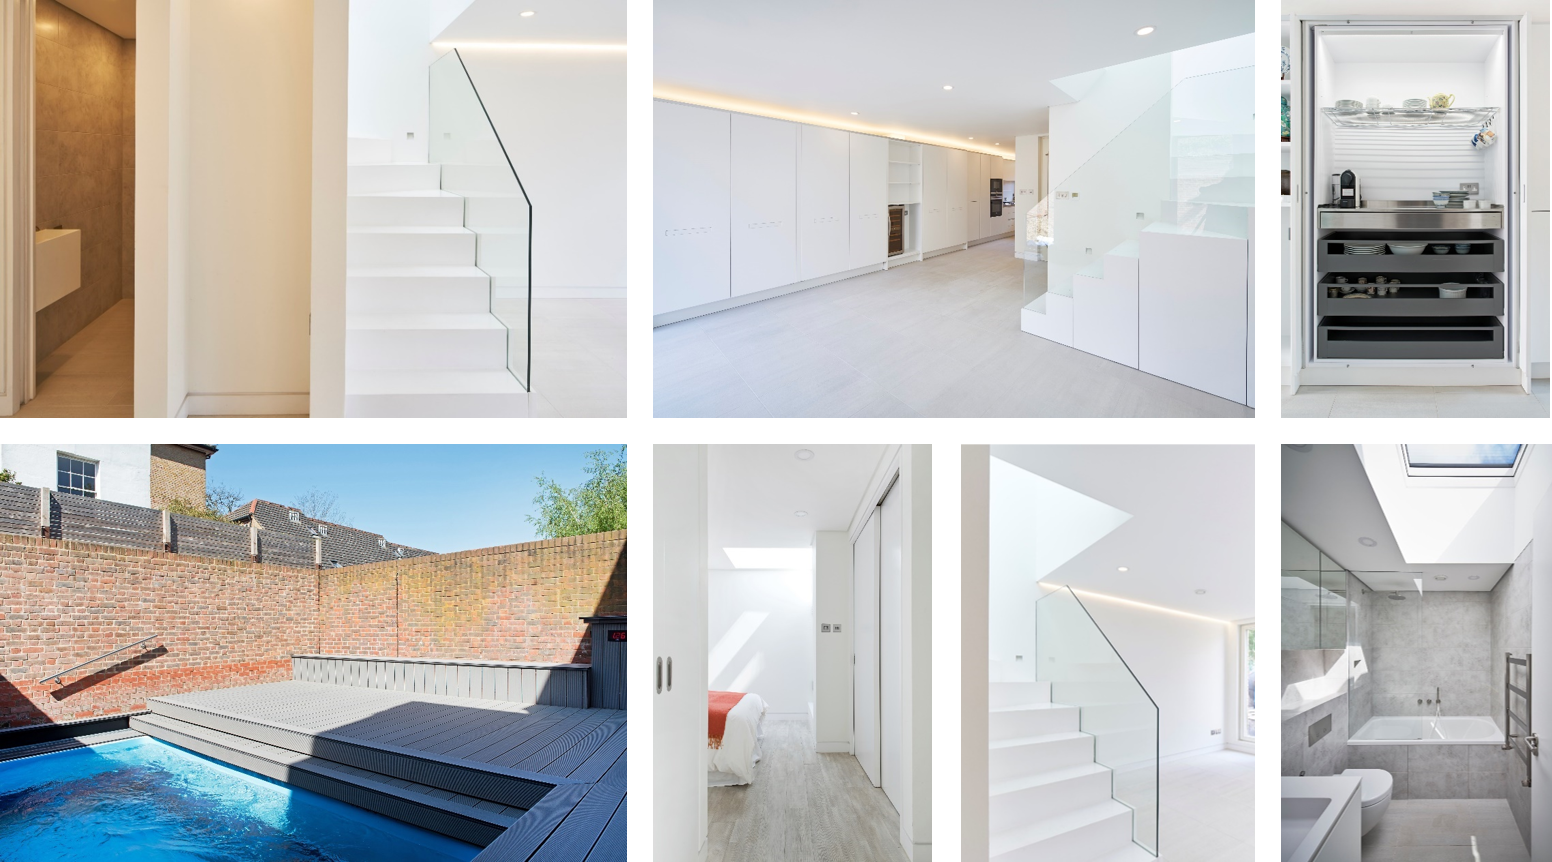 Passivhaus Mews II: 2018 UK Passivhaus Awards Finalist Small Projects